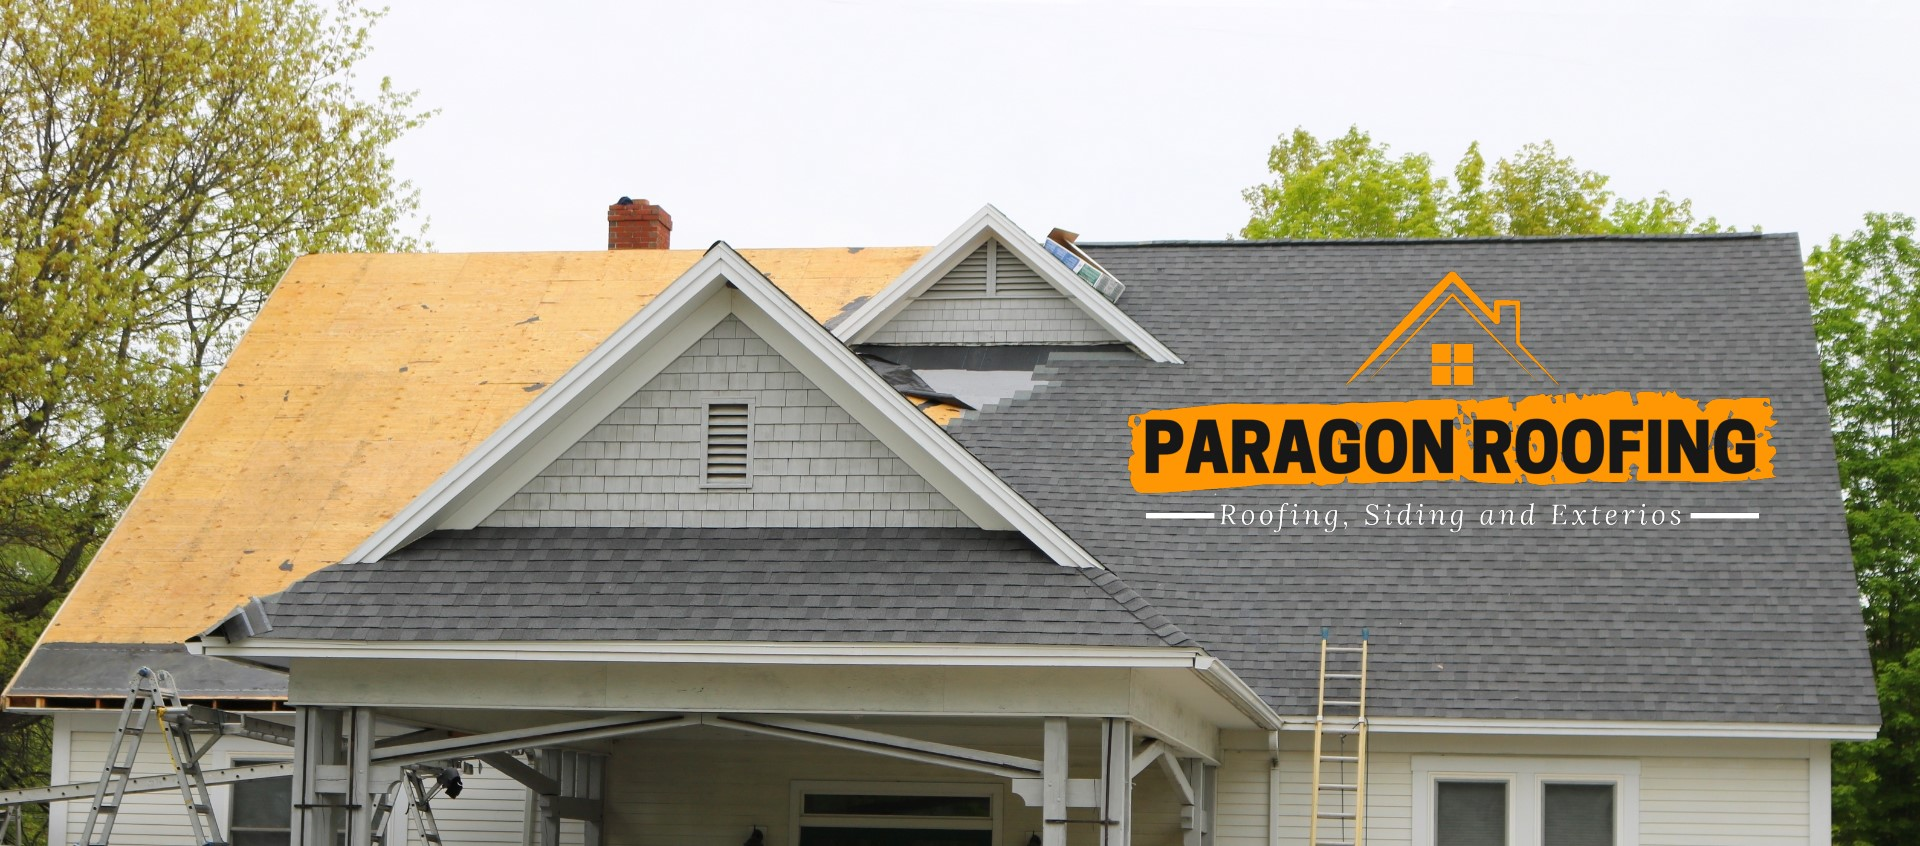 Paragon Roofing - Residential Roof Repair Services